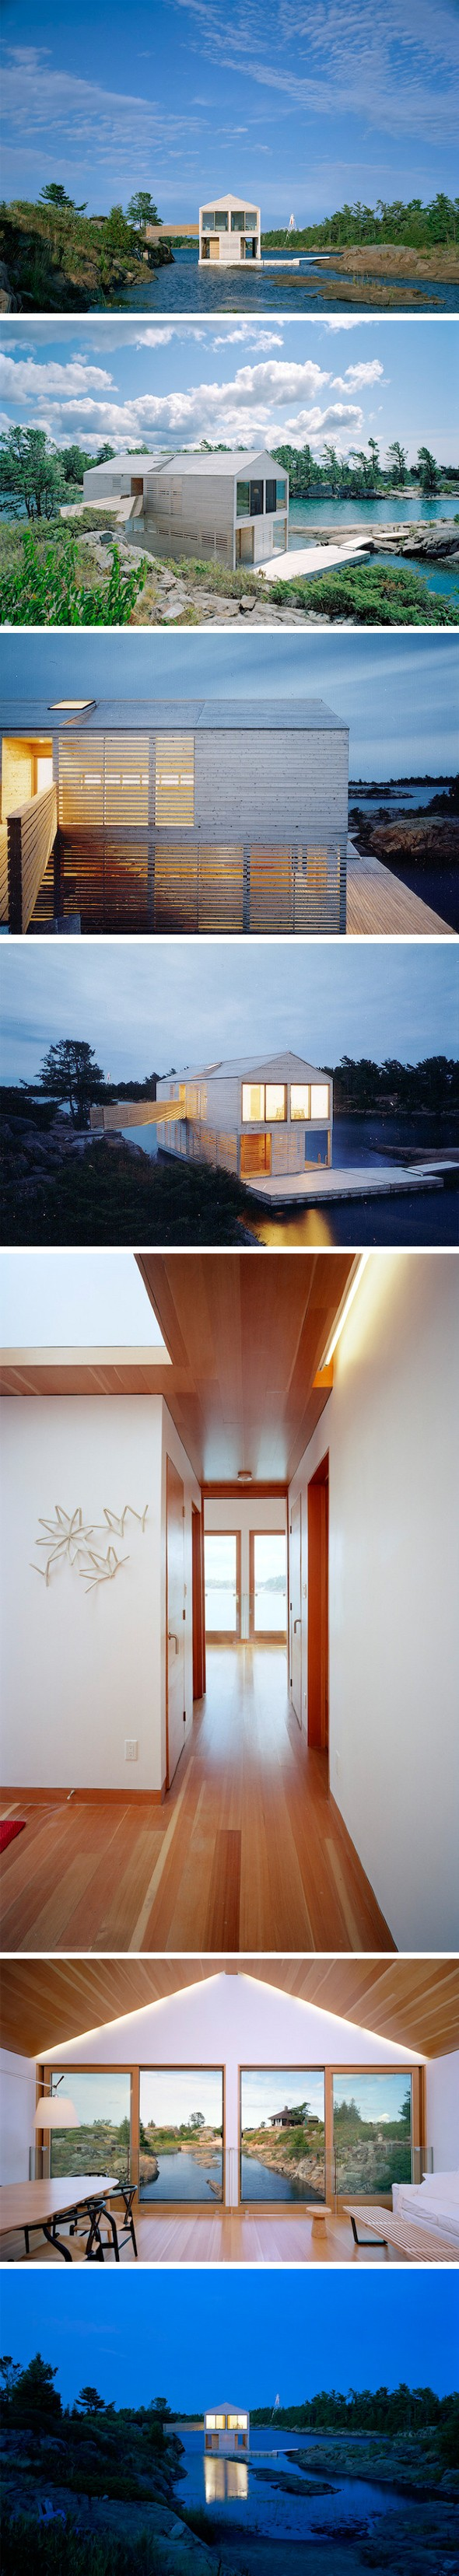 Architecture · Floating House Par MOS Architects